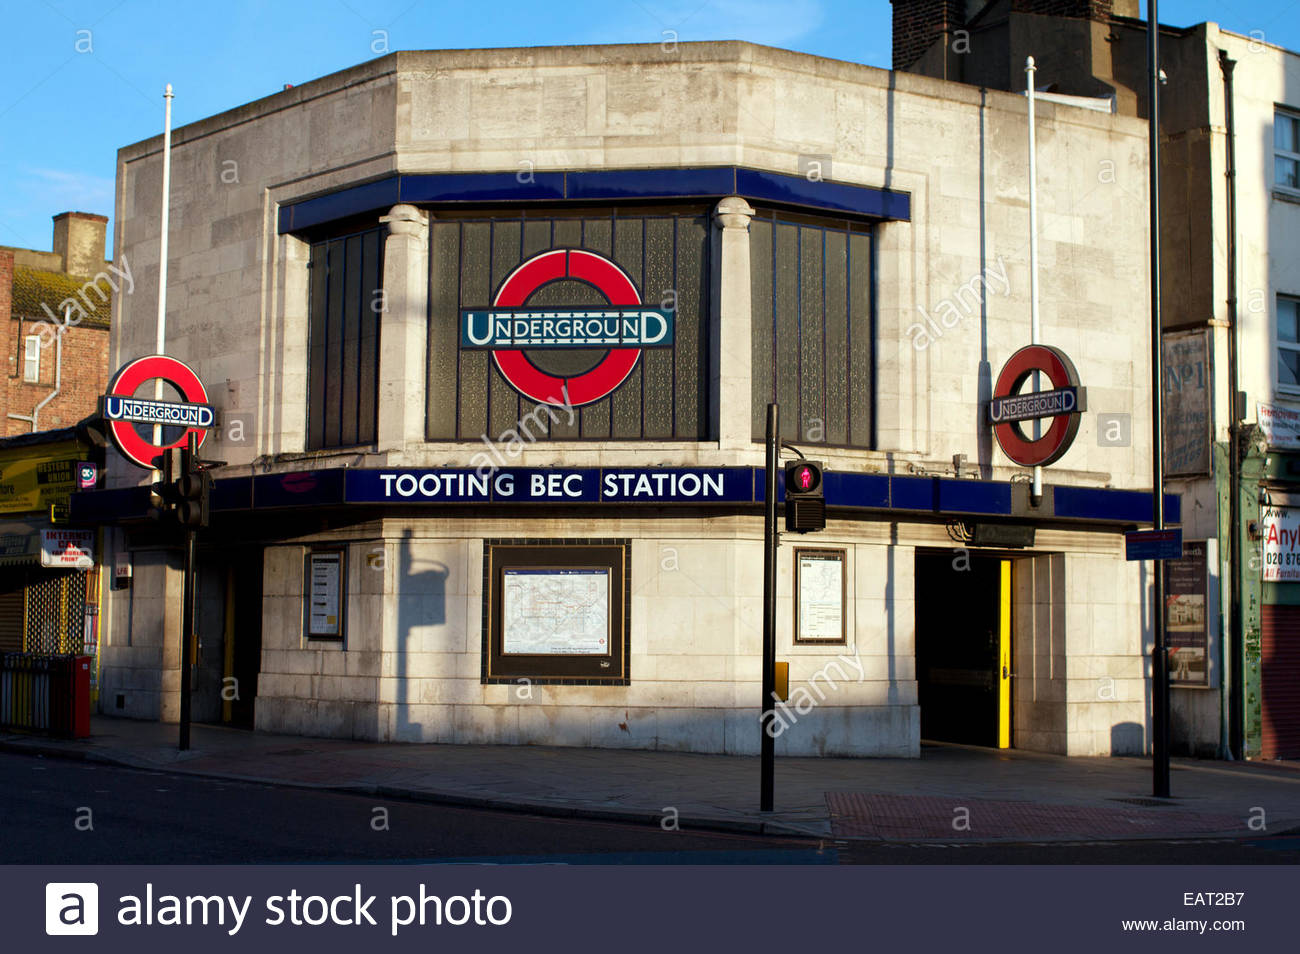 The outside of Tooting Bec underground subway station. - Stock Image